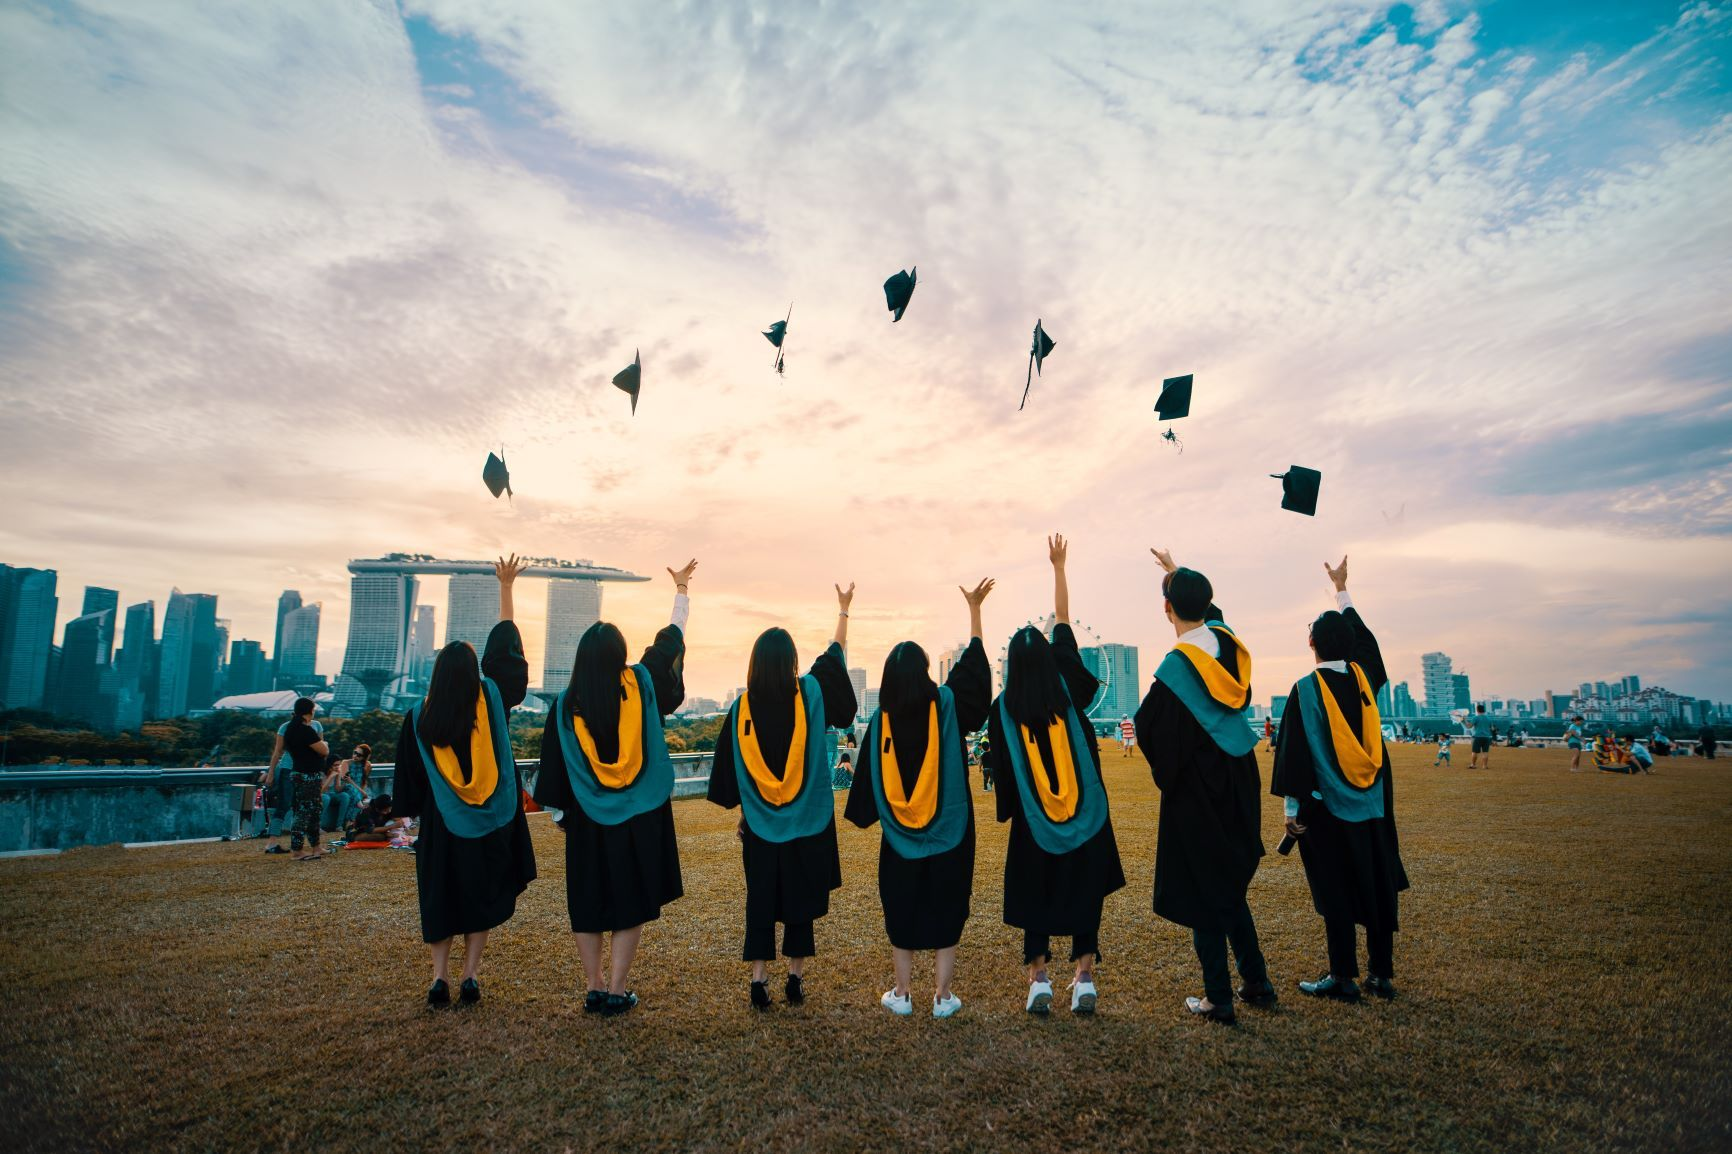 Taking a Gap Year during university, you can still graduate with your friends.